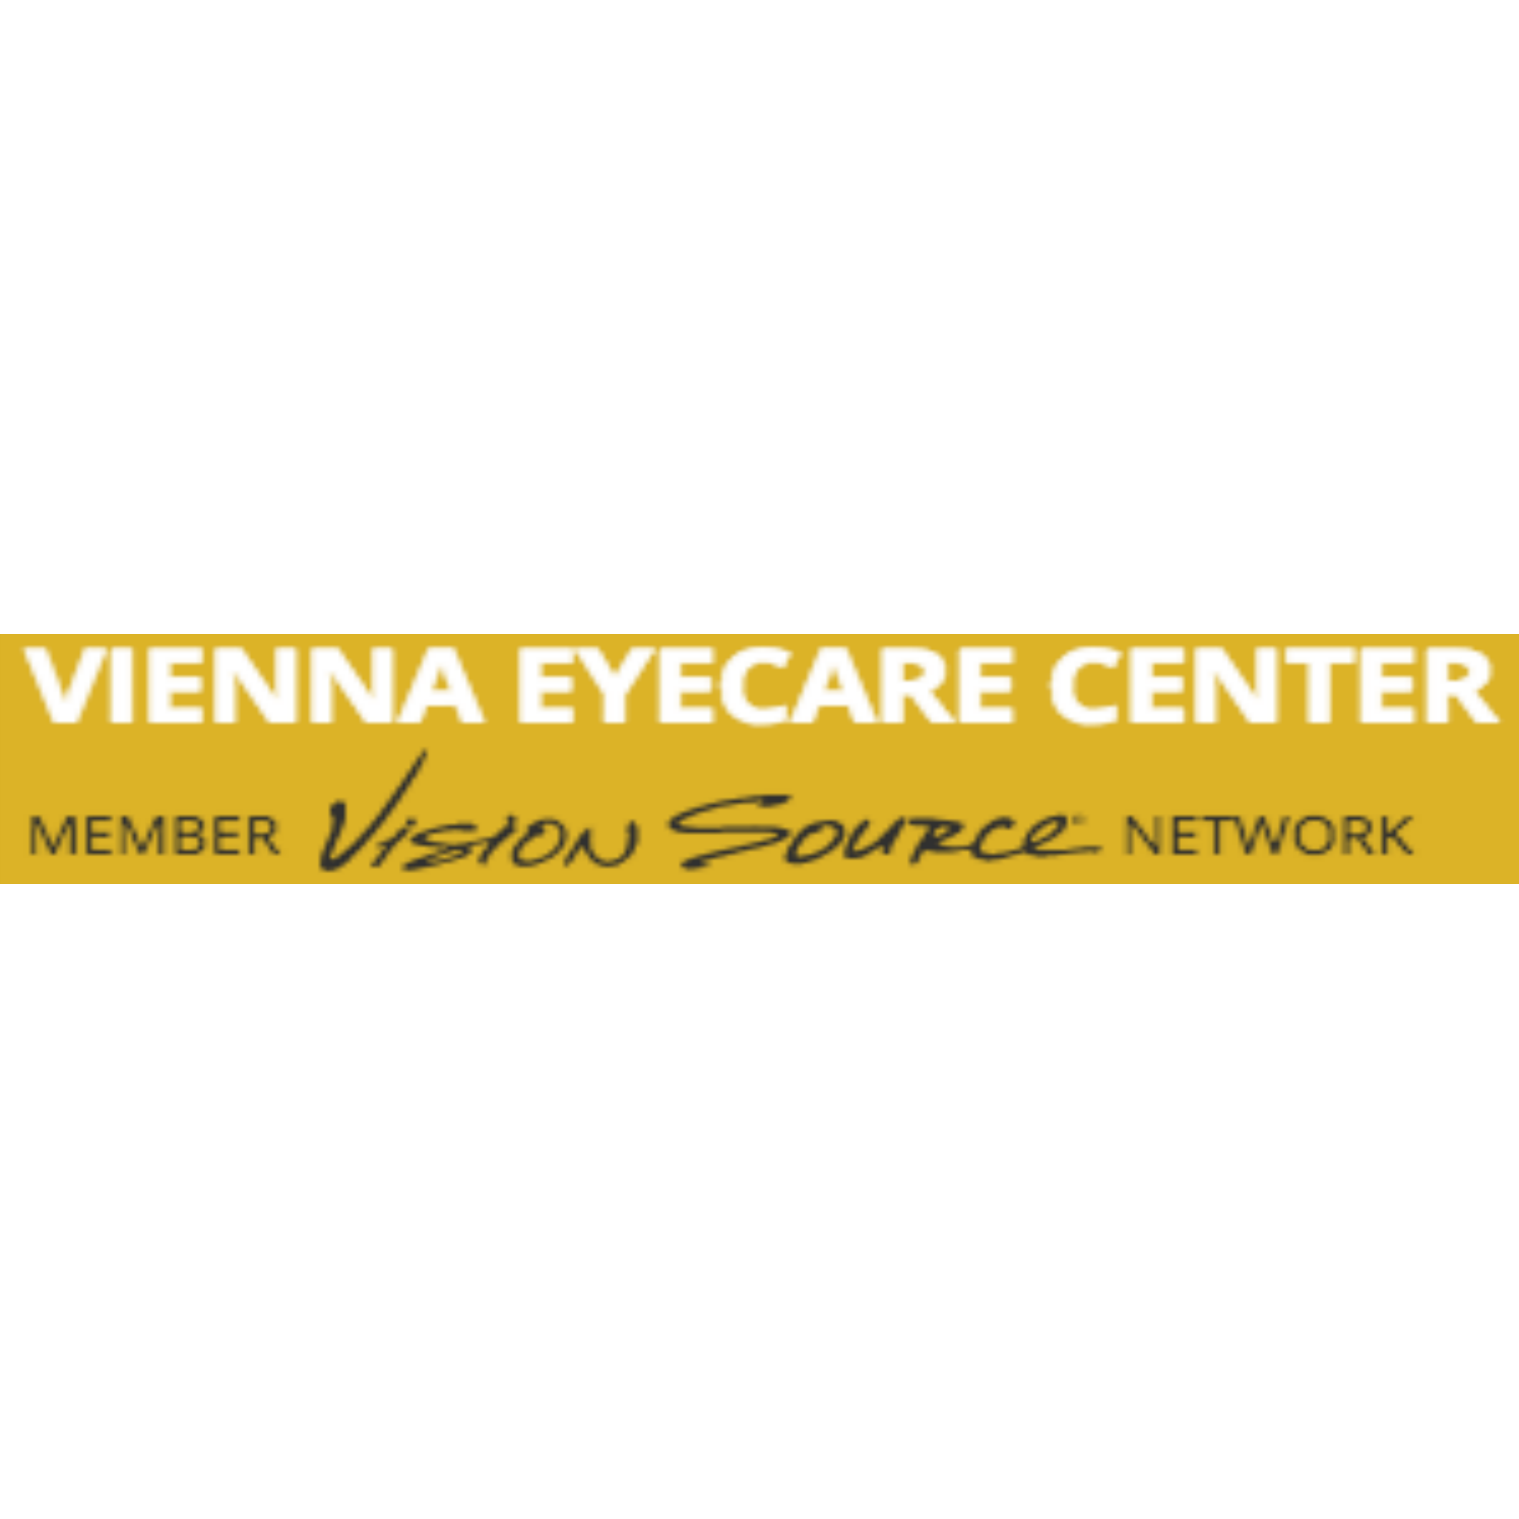 Vienna Eyecare Center